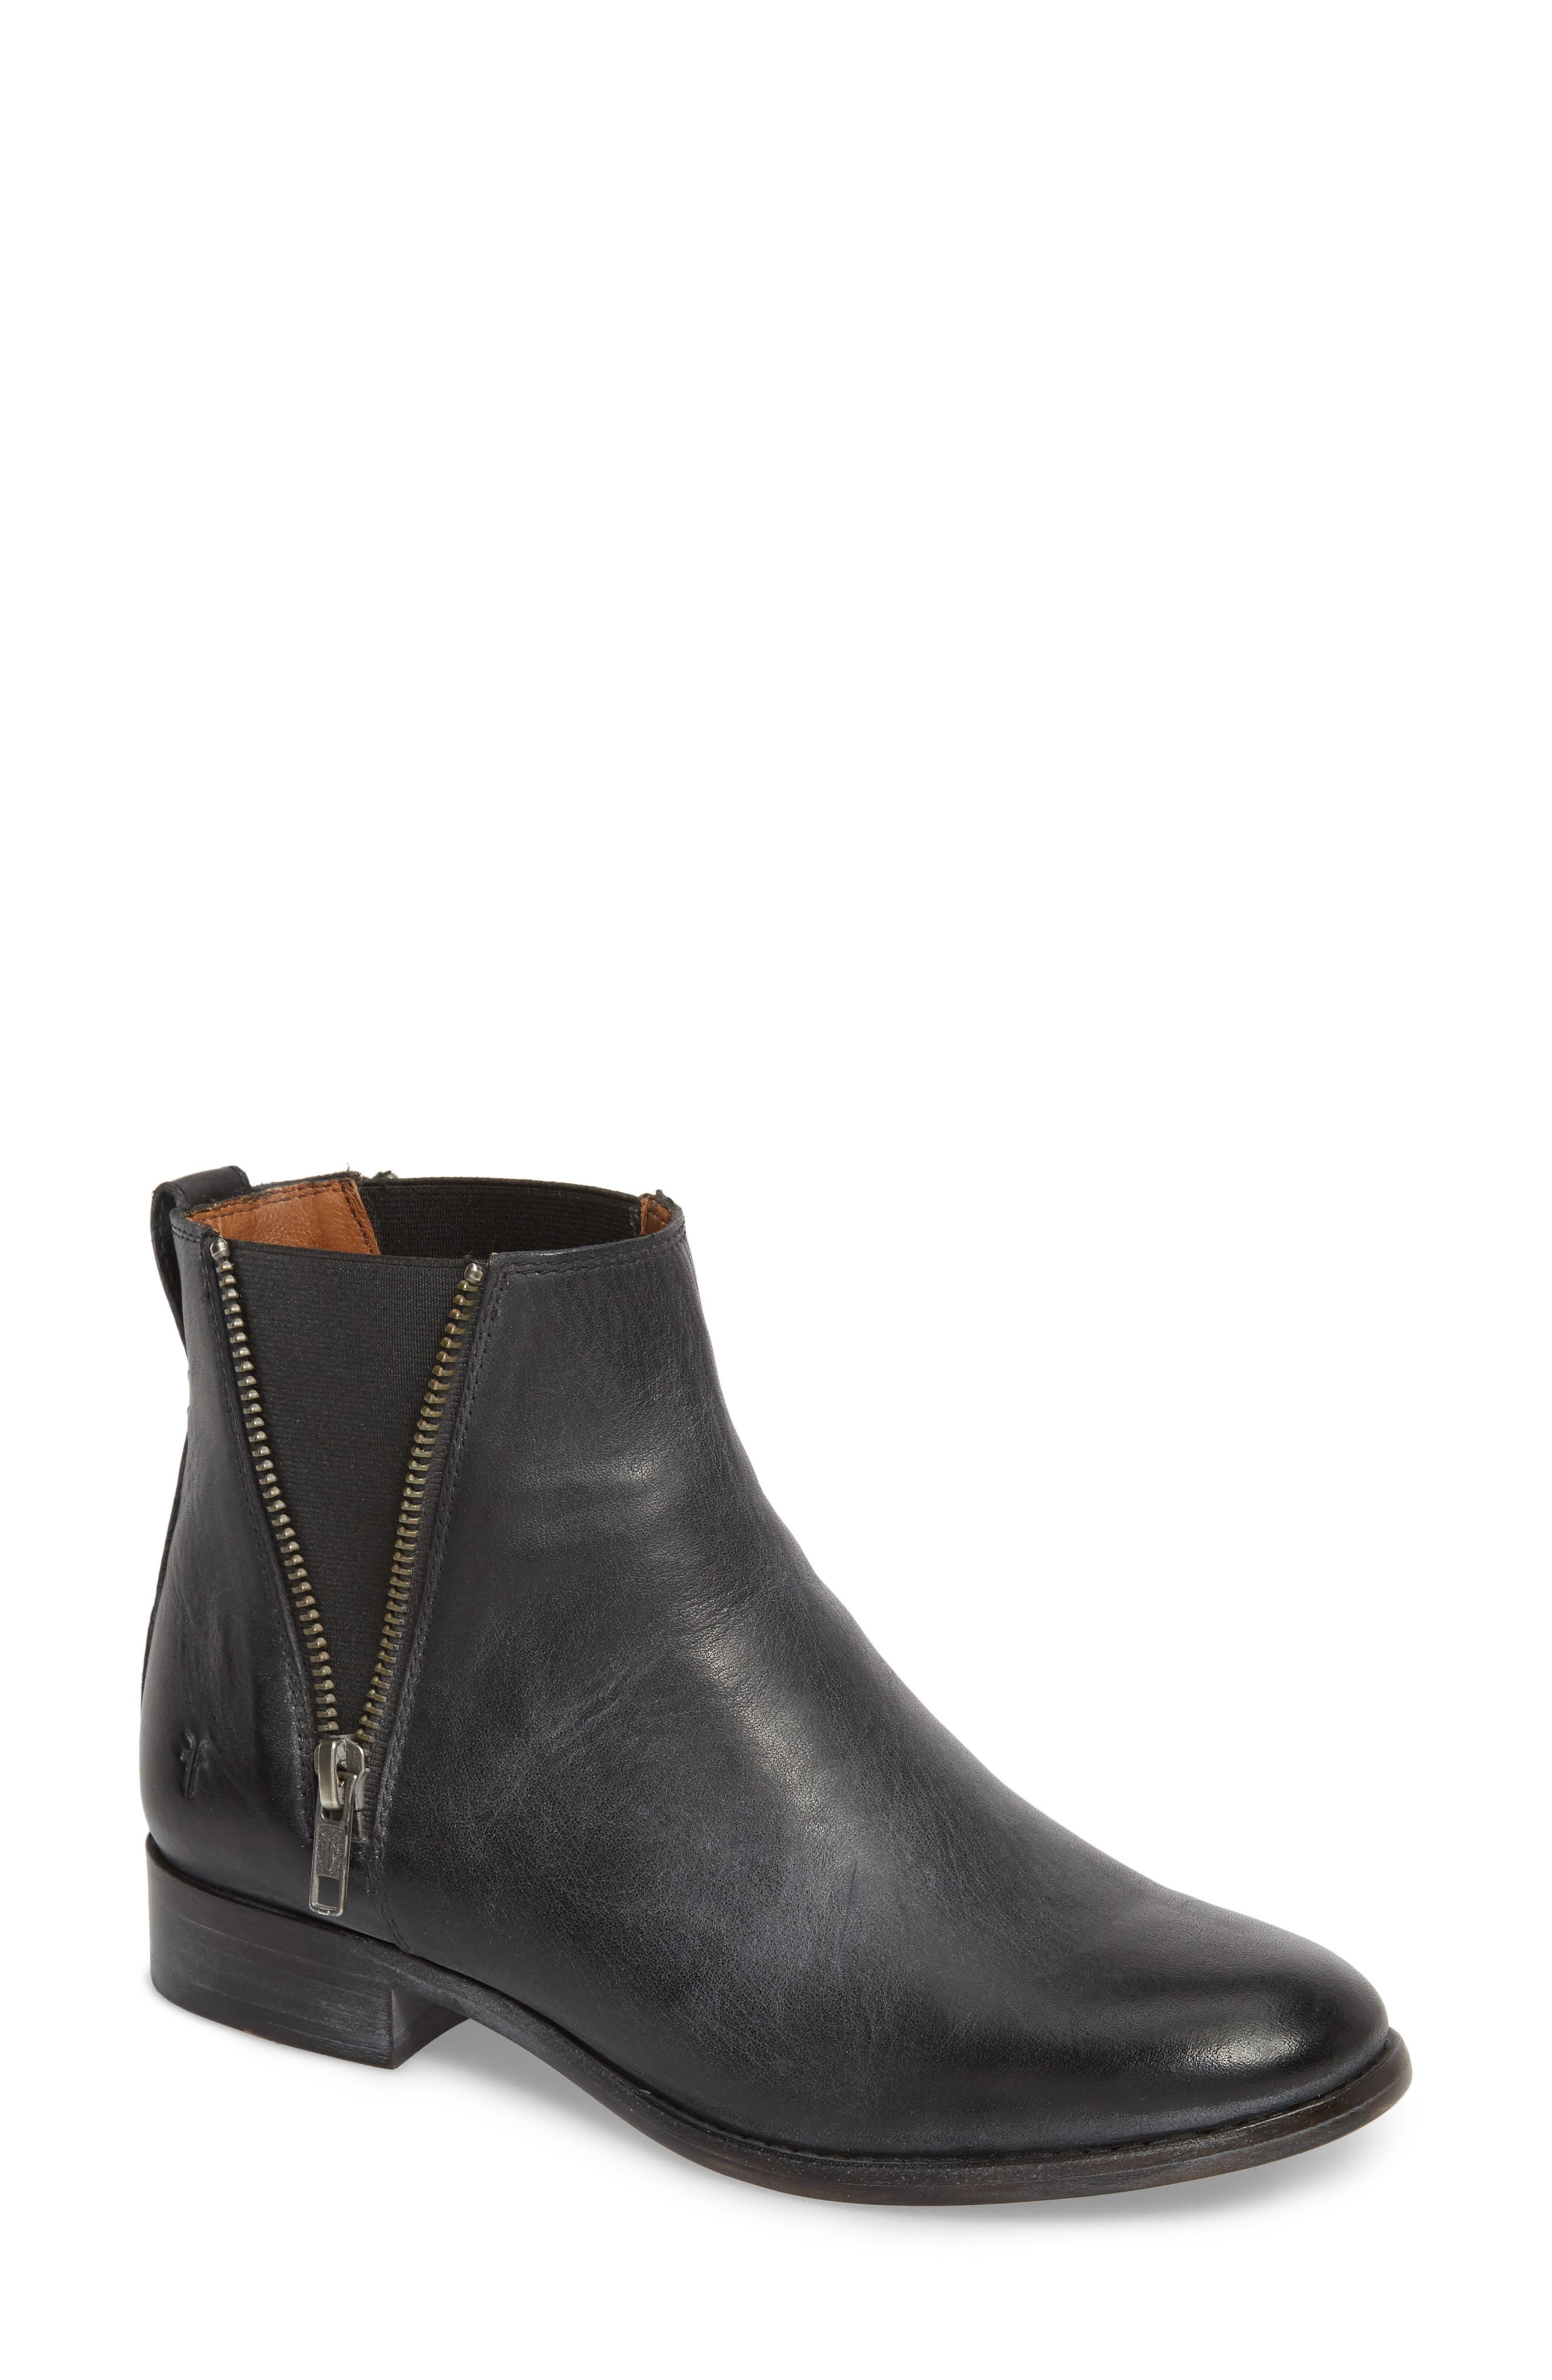 FRYE, Carly Chelsea Boot, Main thumbnail 1, color, BLACK ANTIQUED LEATHER